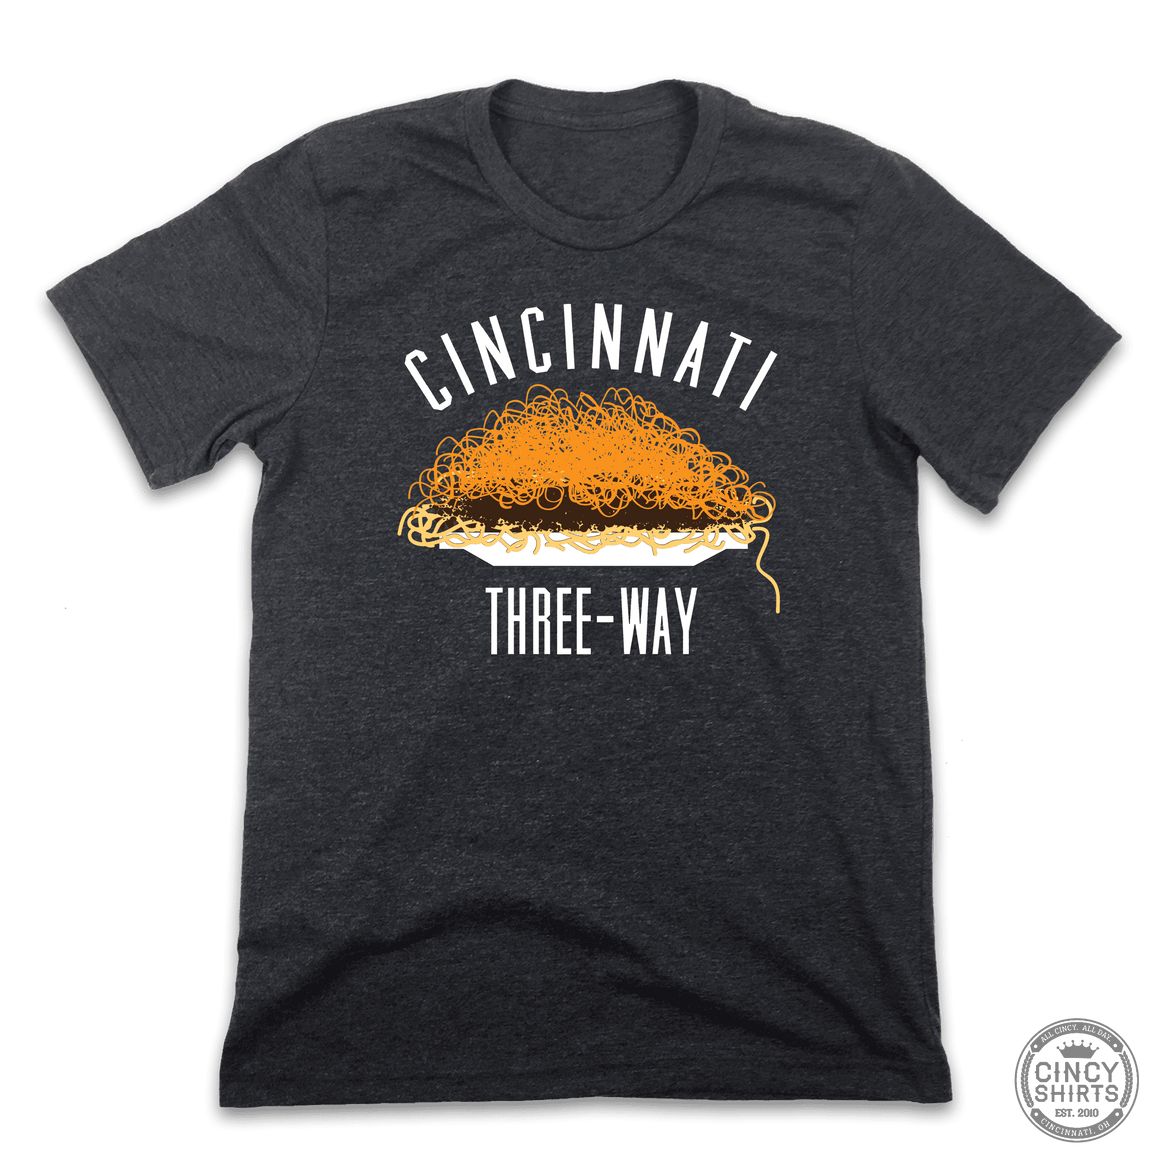 Cincinnati Chili Three-Way - Cincy Shirts